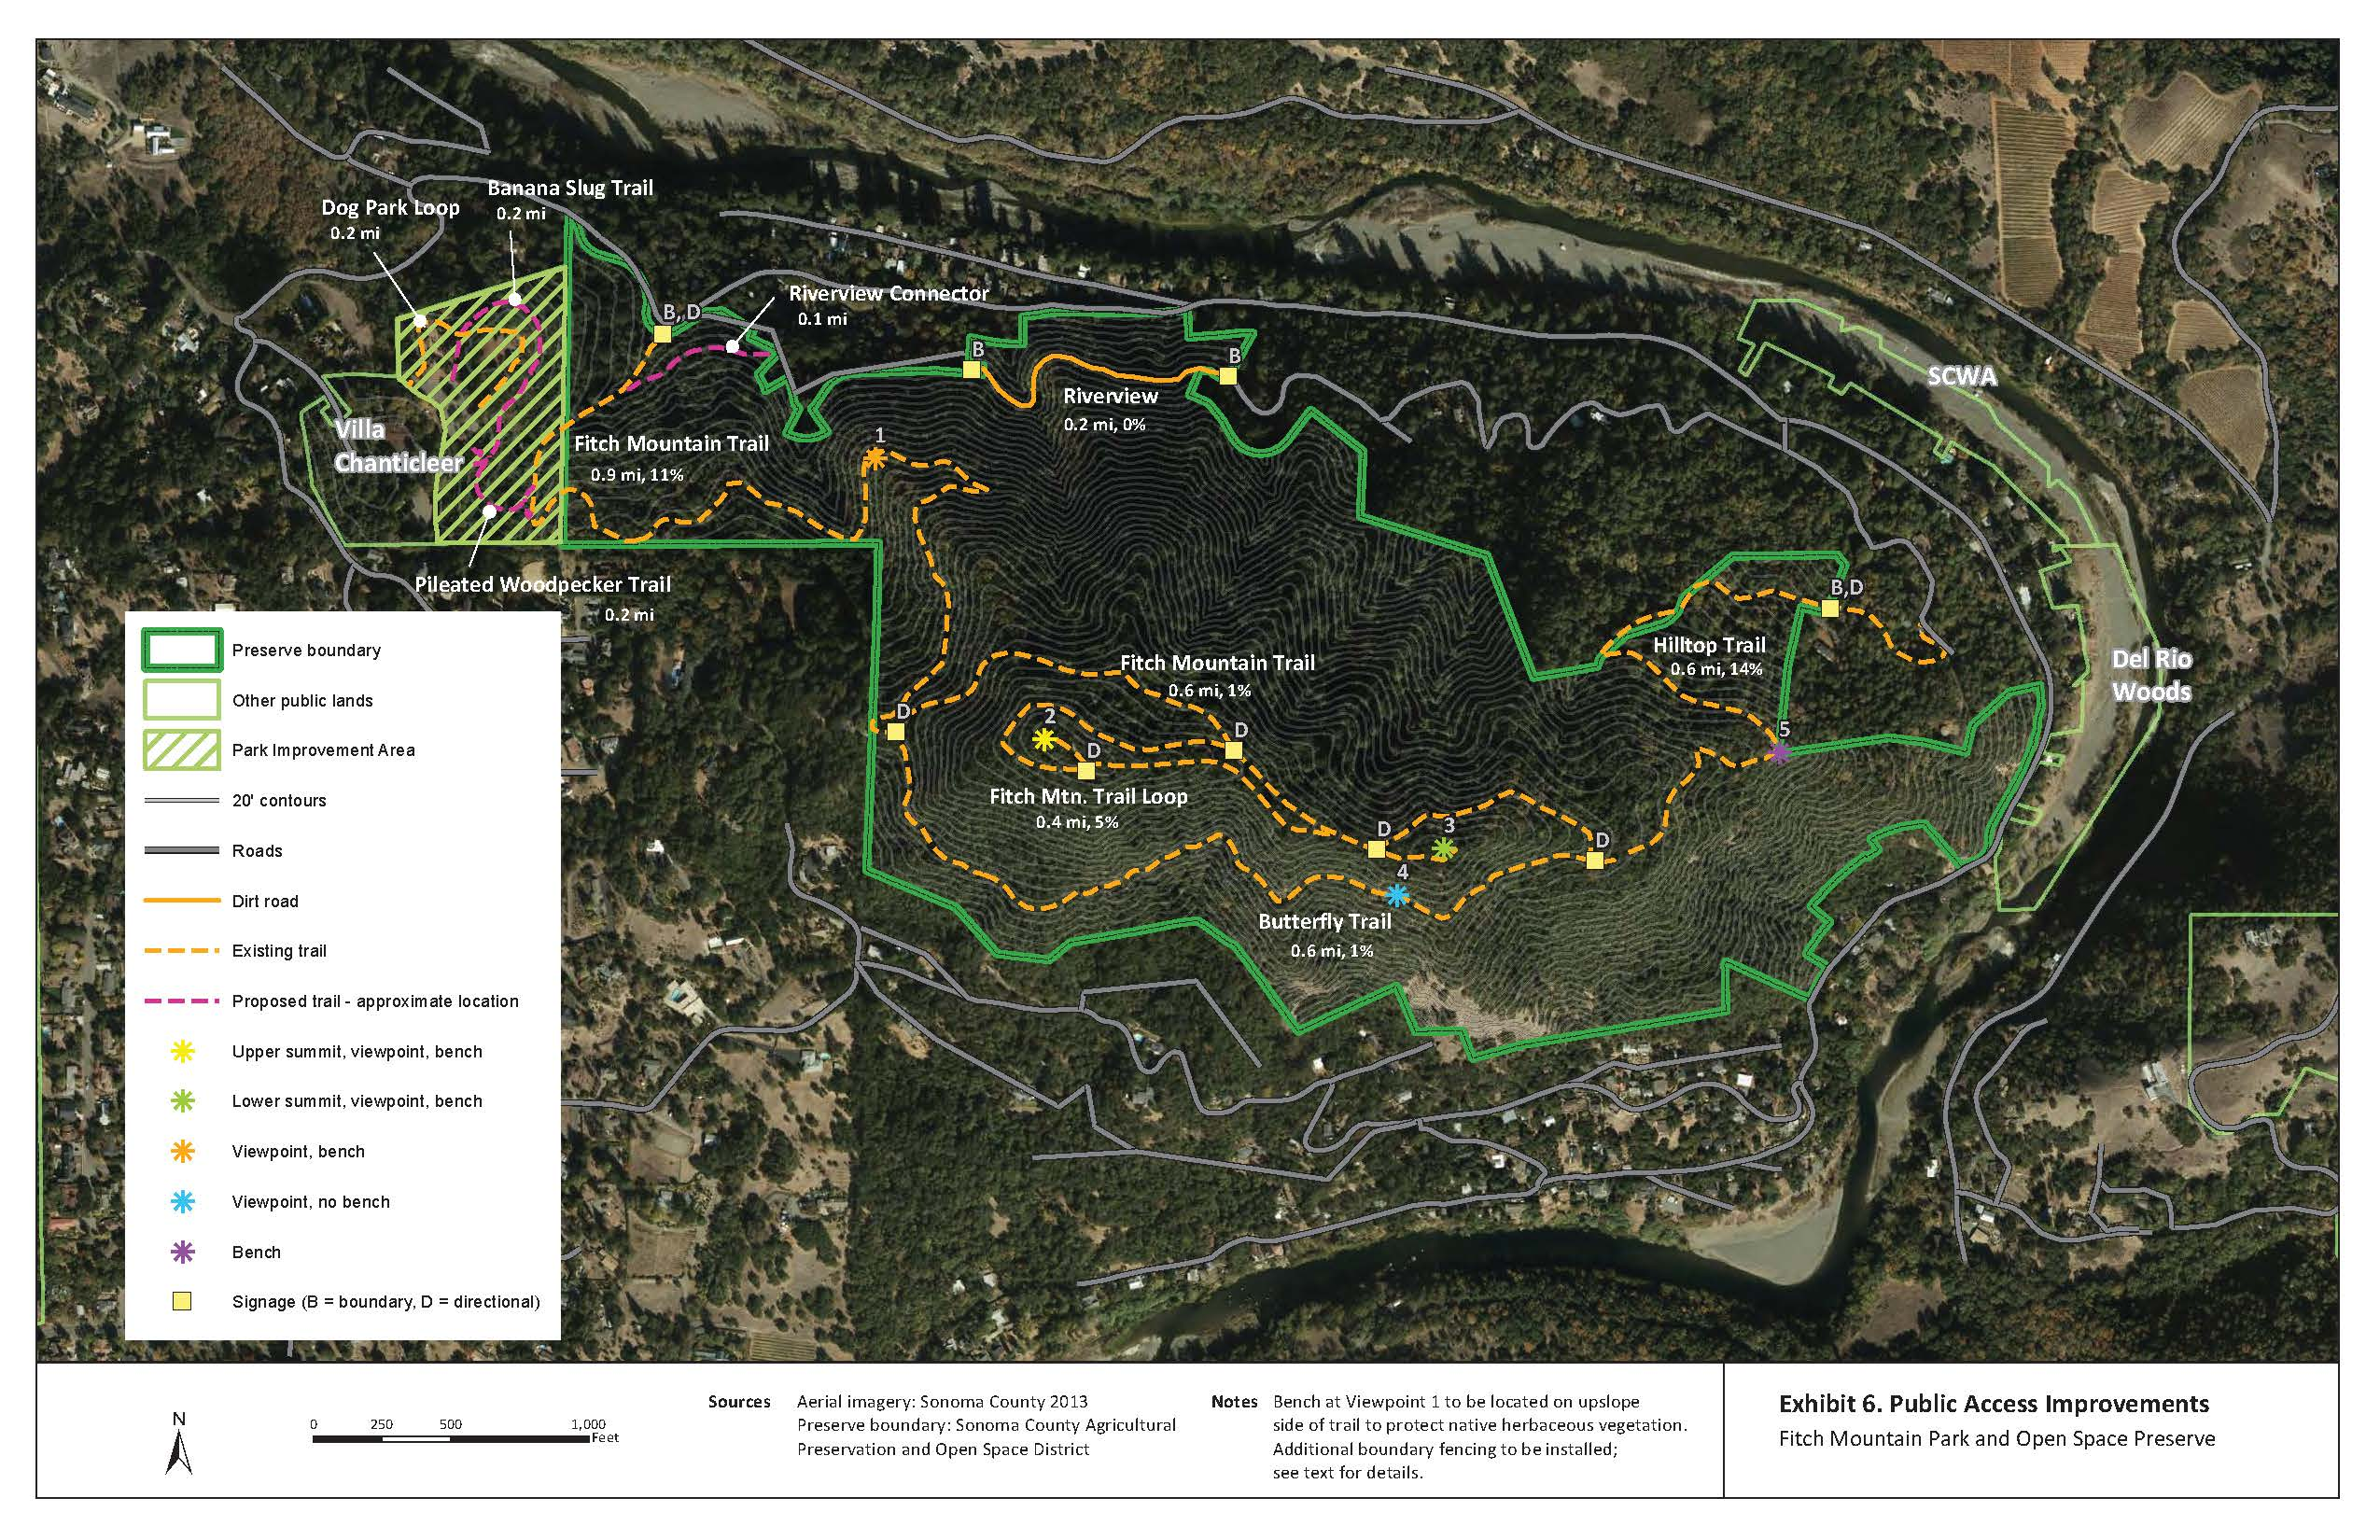 Fitch Mountain Trail Map